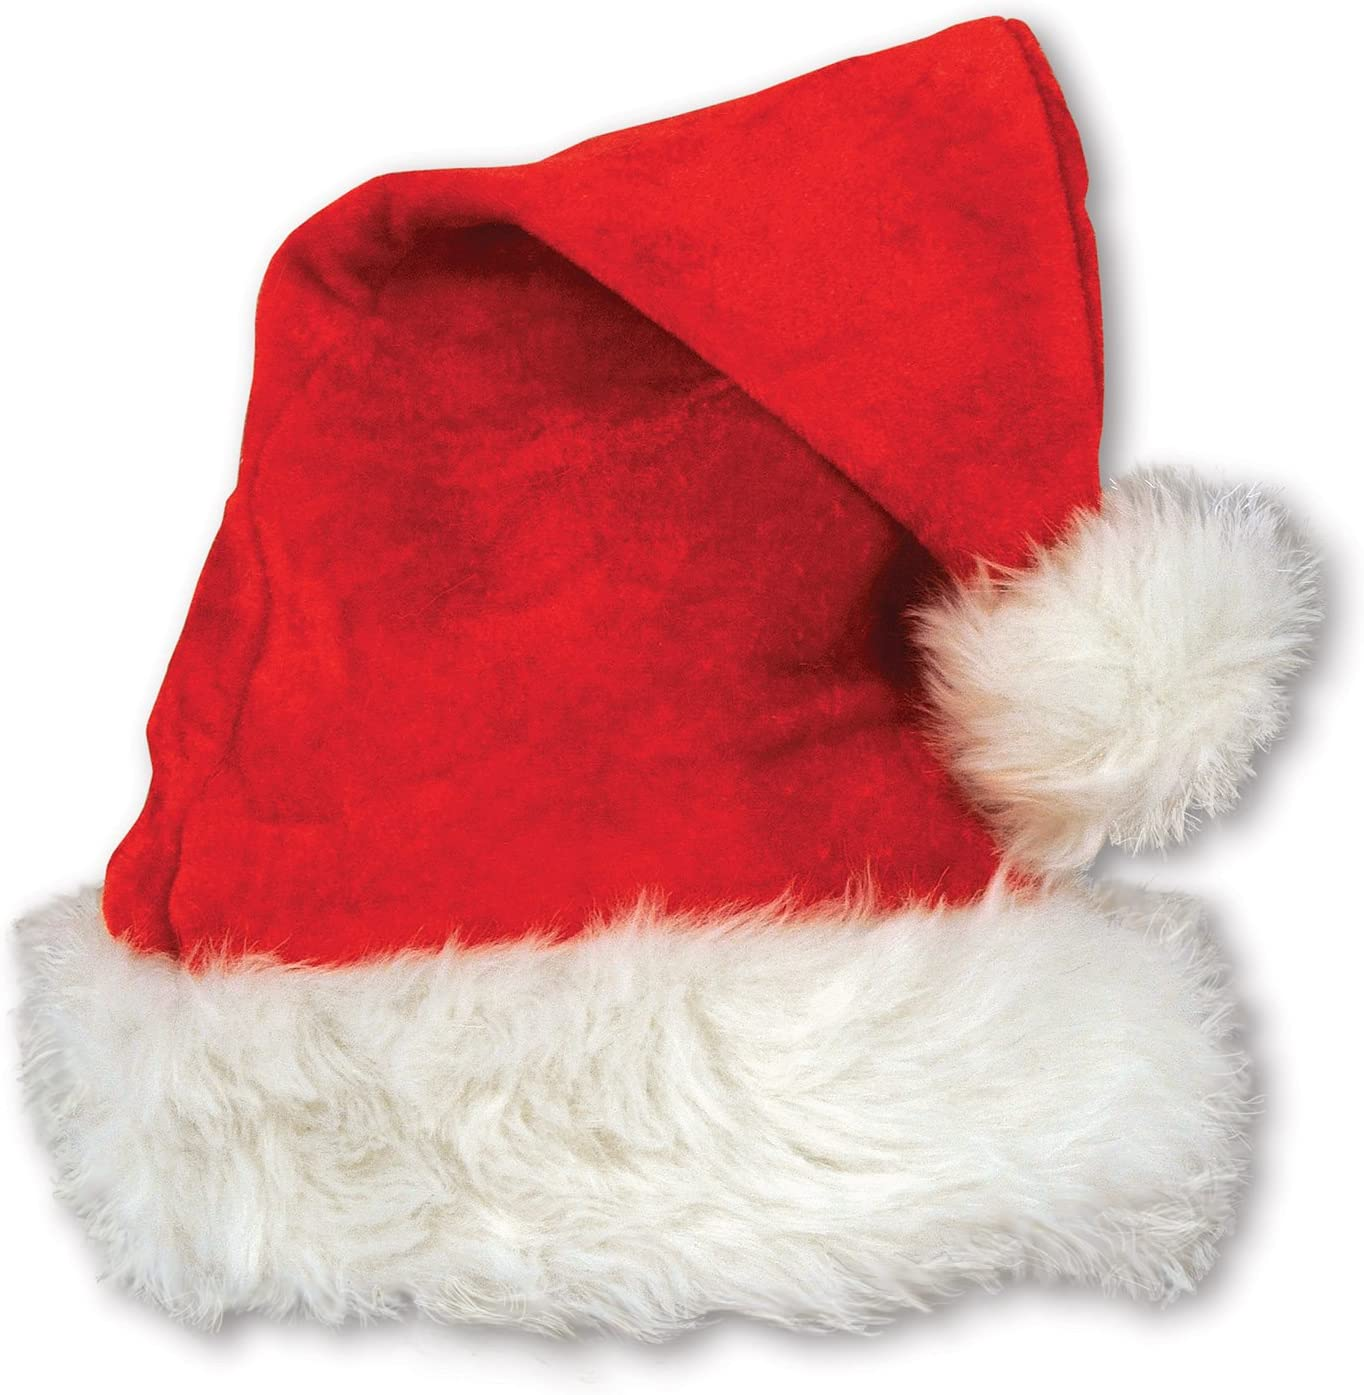 NEW * 16 INCH STOCKING ONE SIZE HAT HAT AND STOCKING SET *ASSORTED COLORS